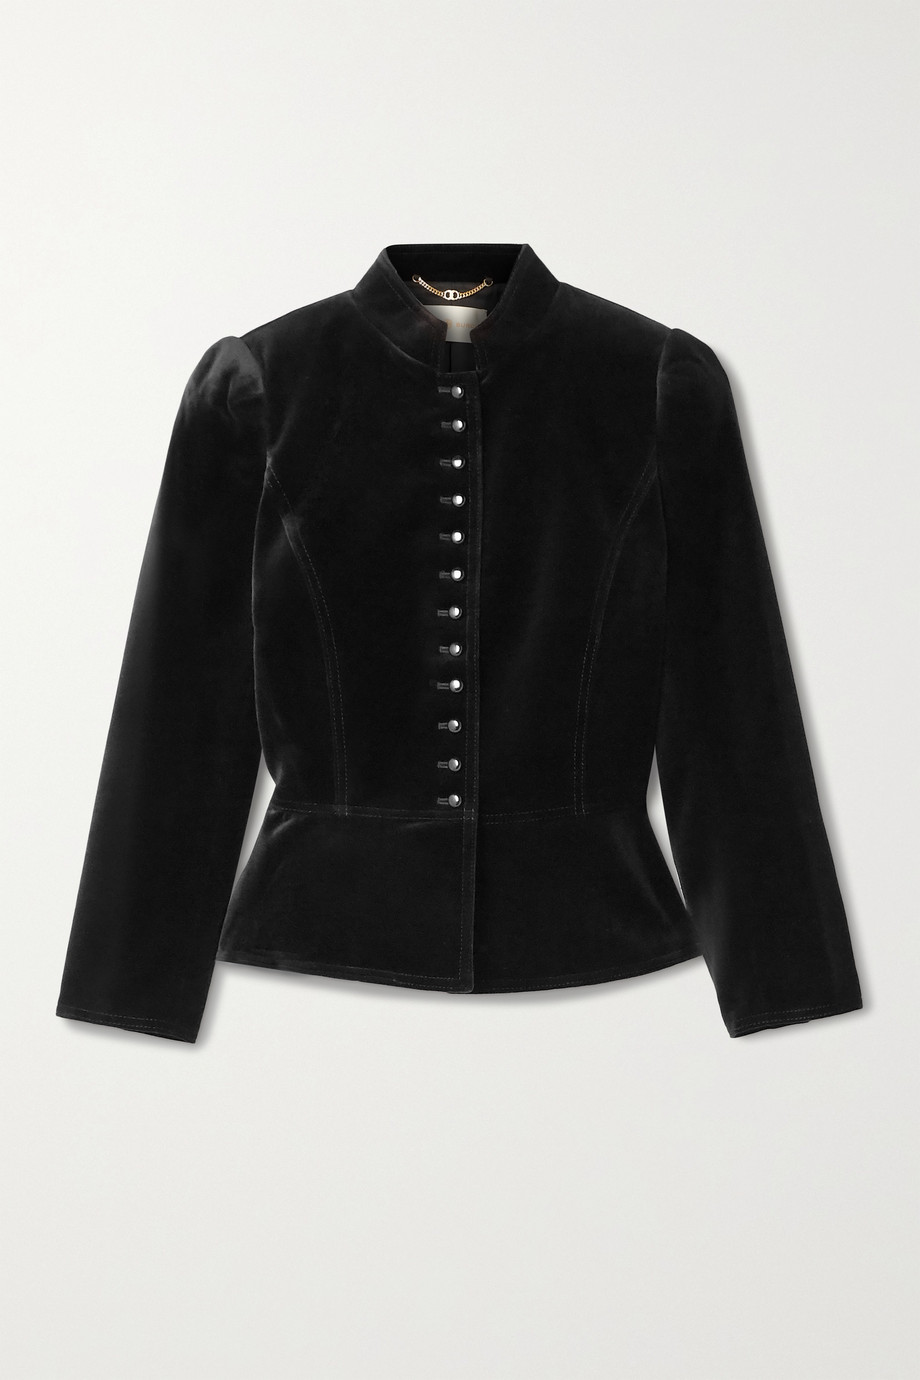 TORY BURCH Cotton-blend velvet jacket